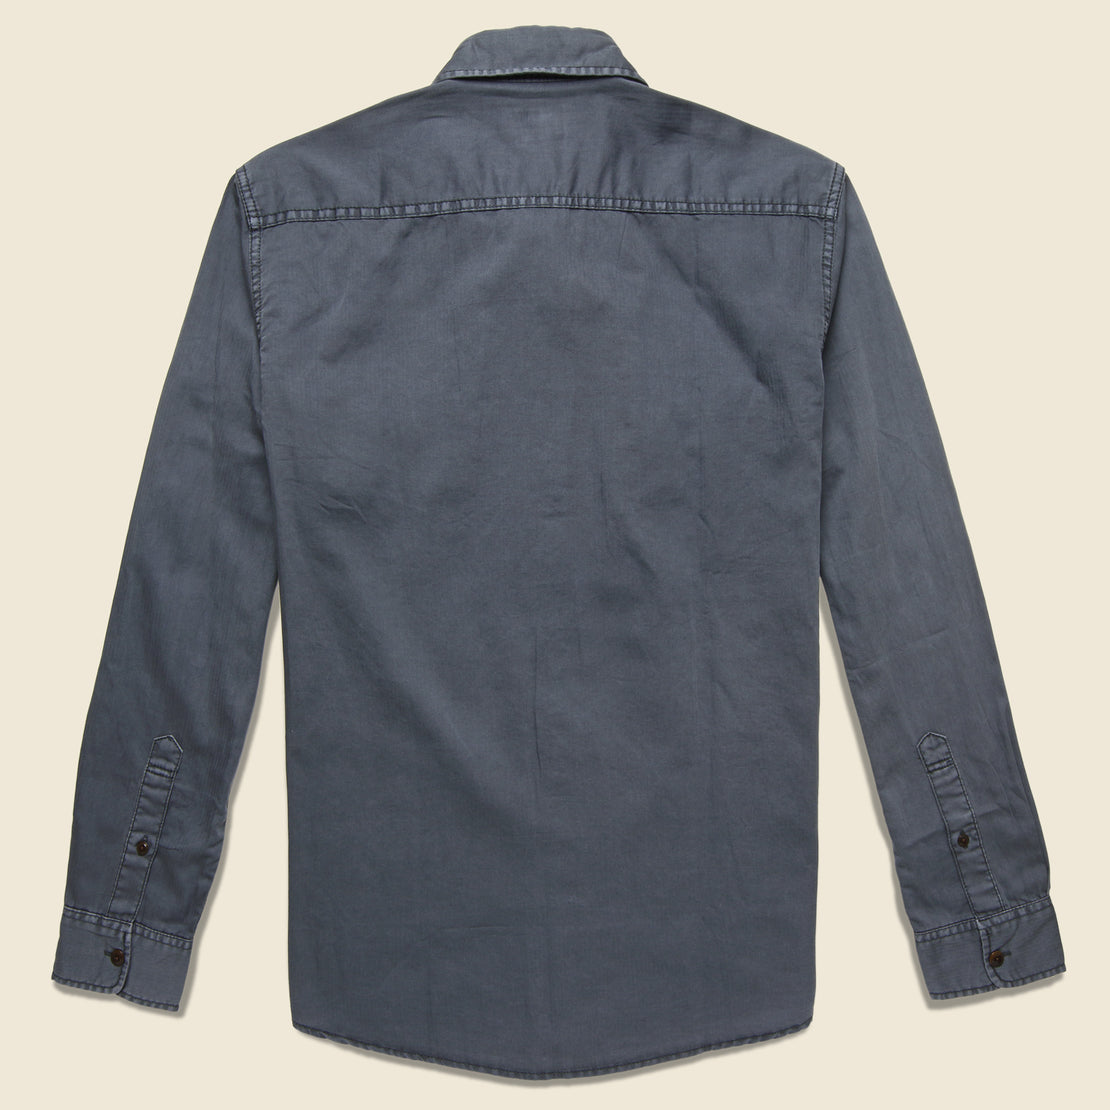 Washed Chino Shirt - Midnight - Faherty - STAG Provisions - Tops - L/S Woven - Solid